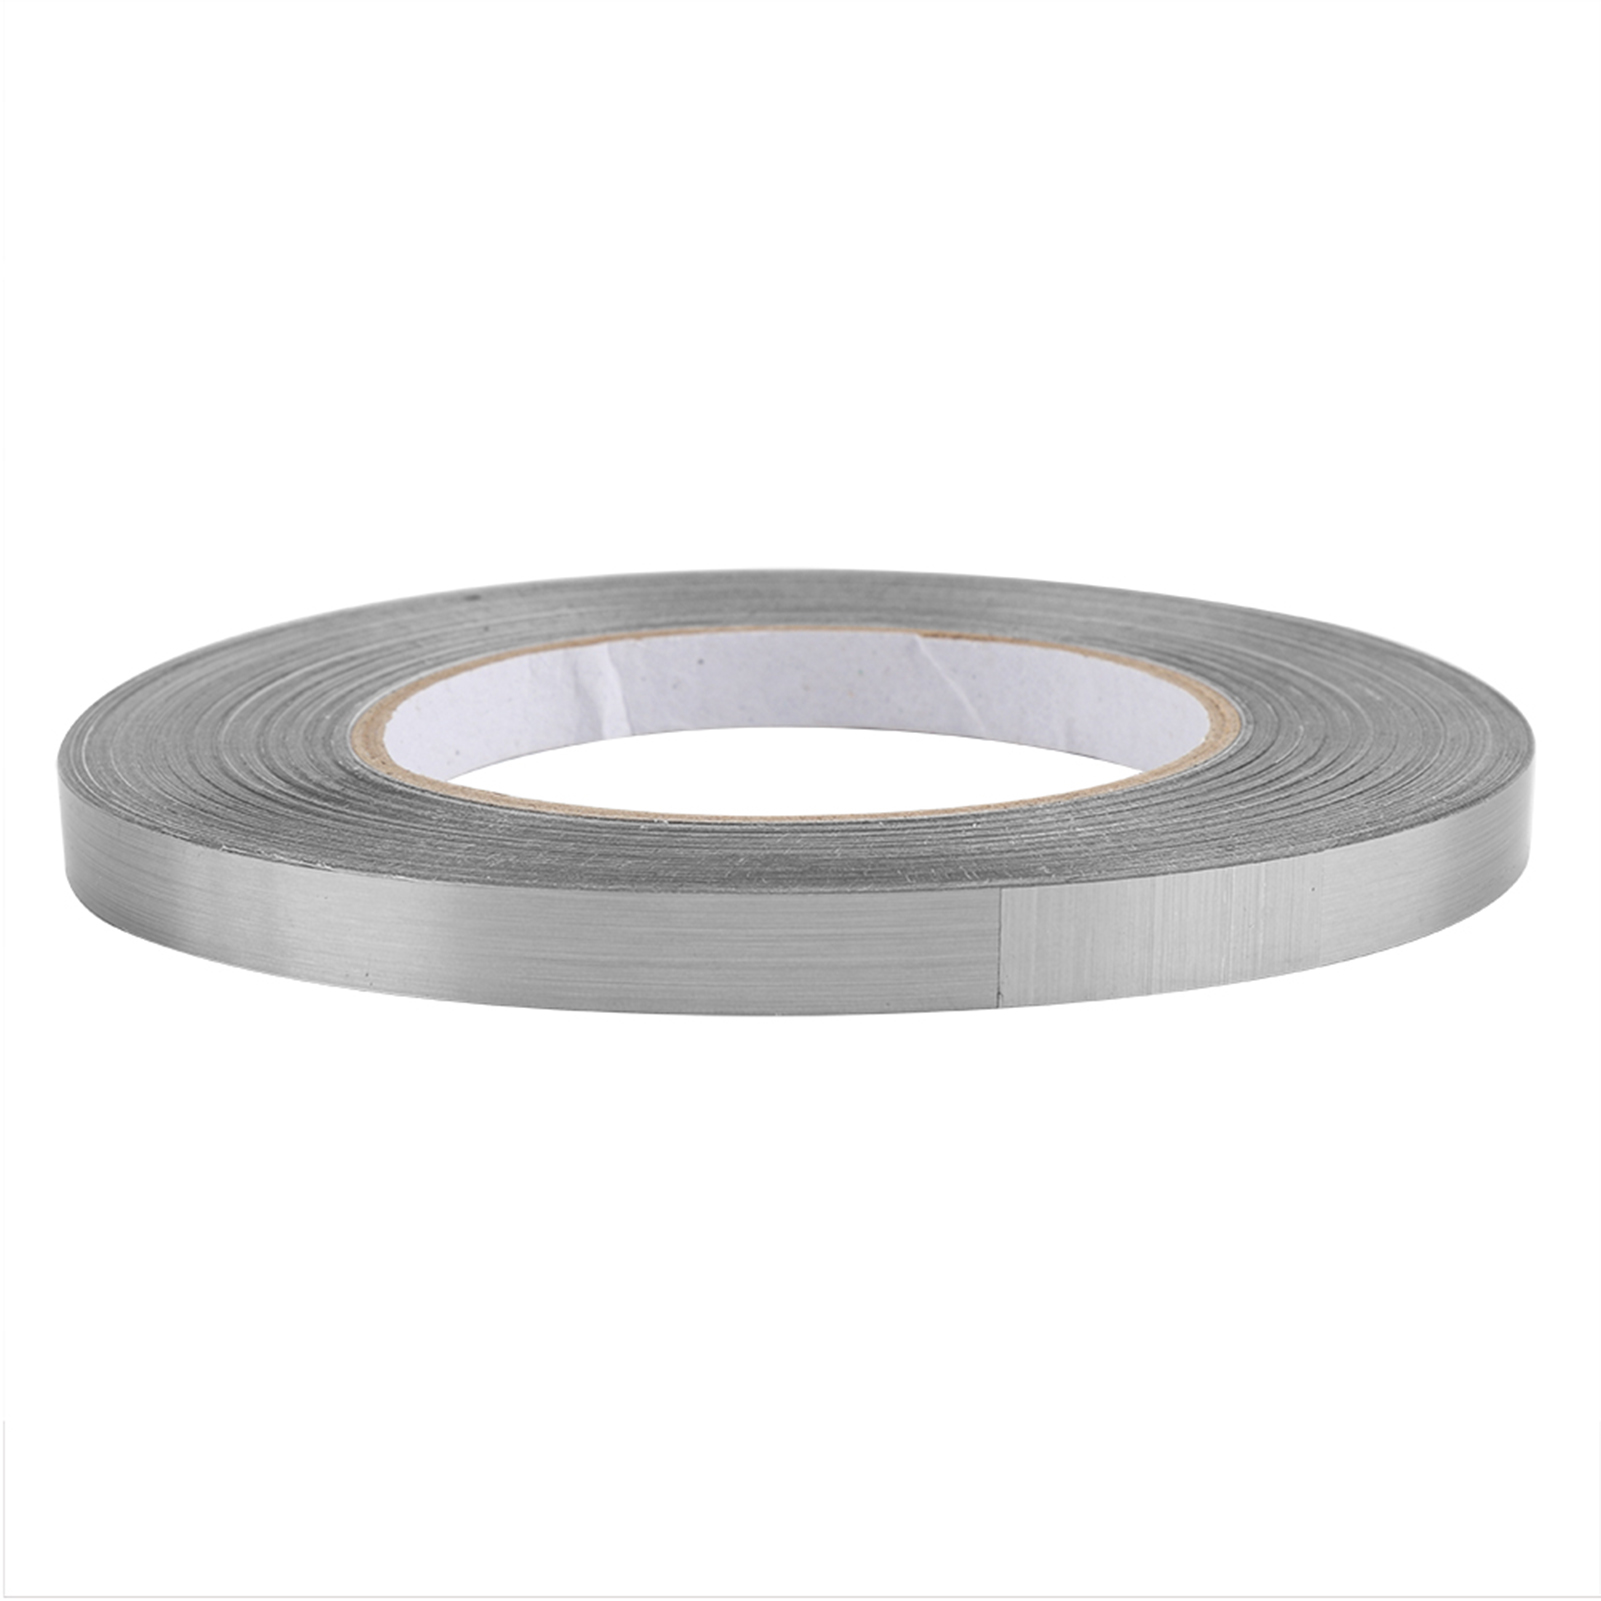 Pvc Foil Ground Tile Floor Crevice Line Sticker Self Adhesive Corner